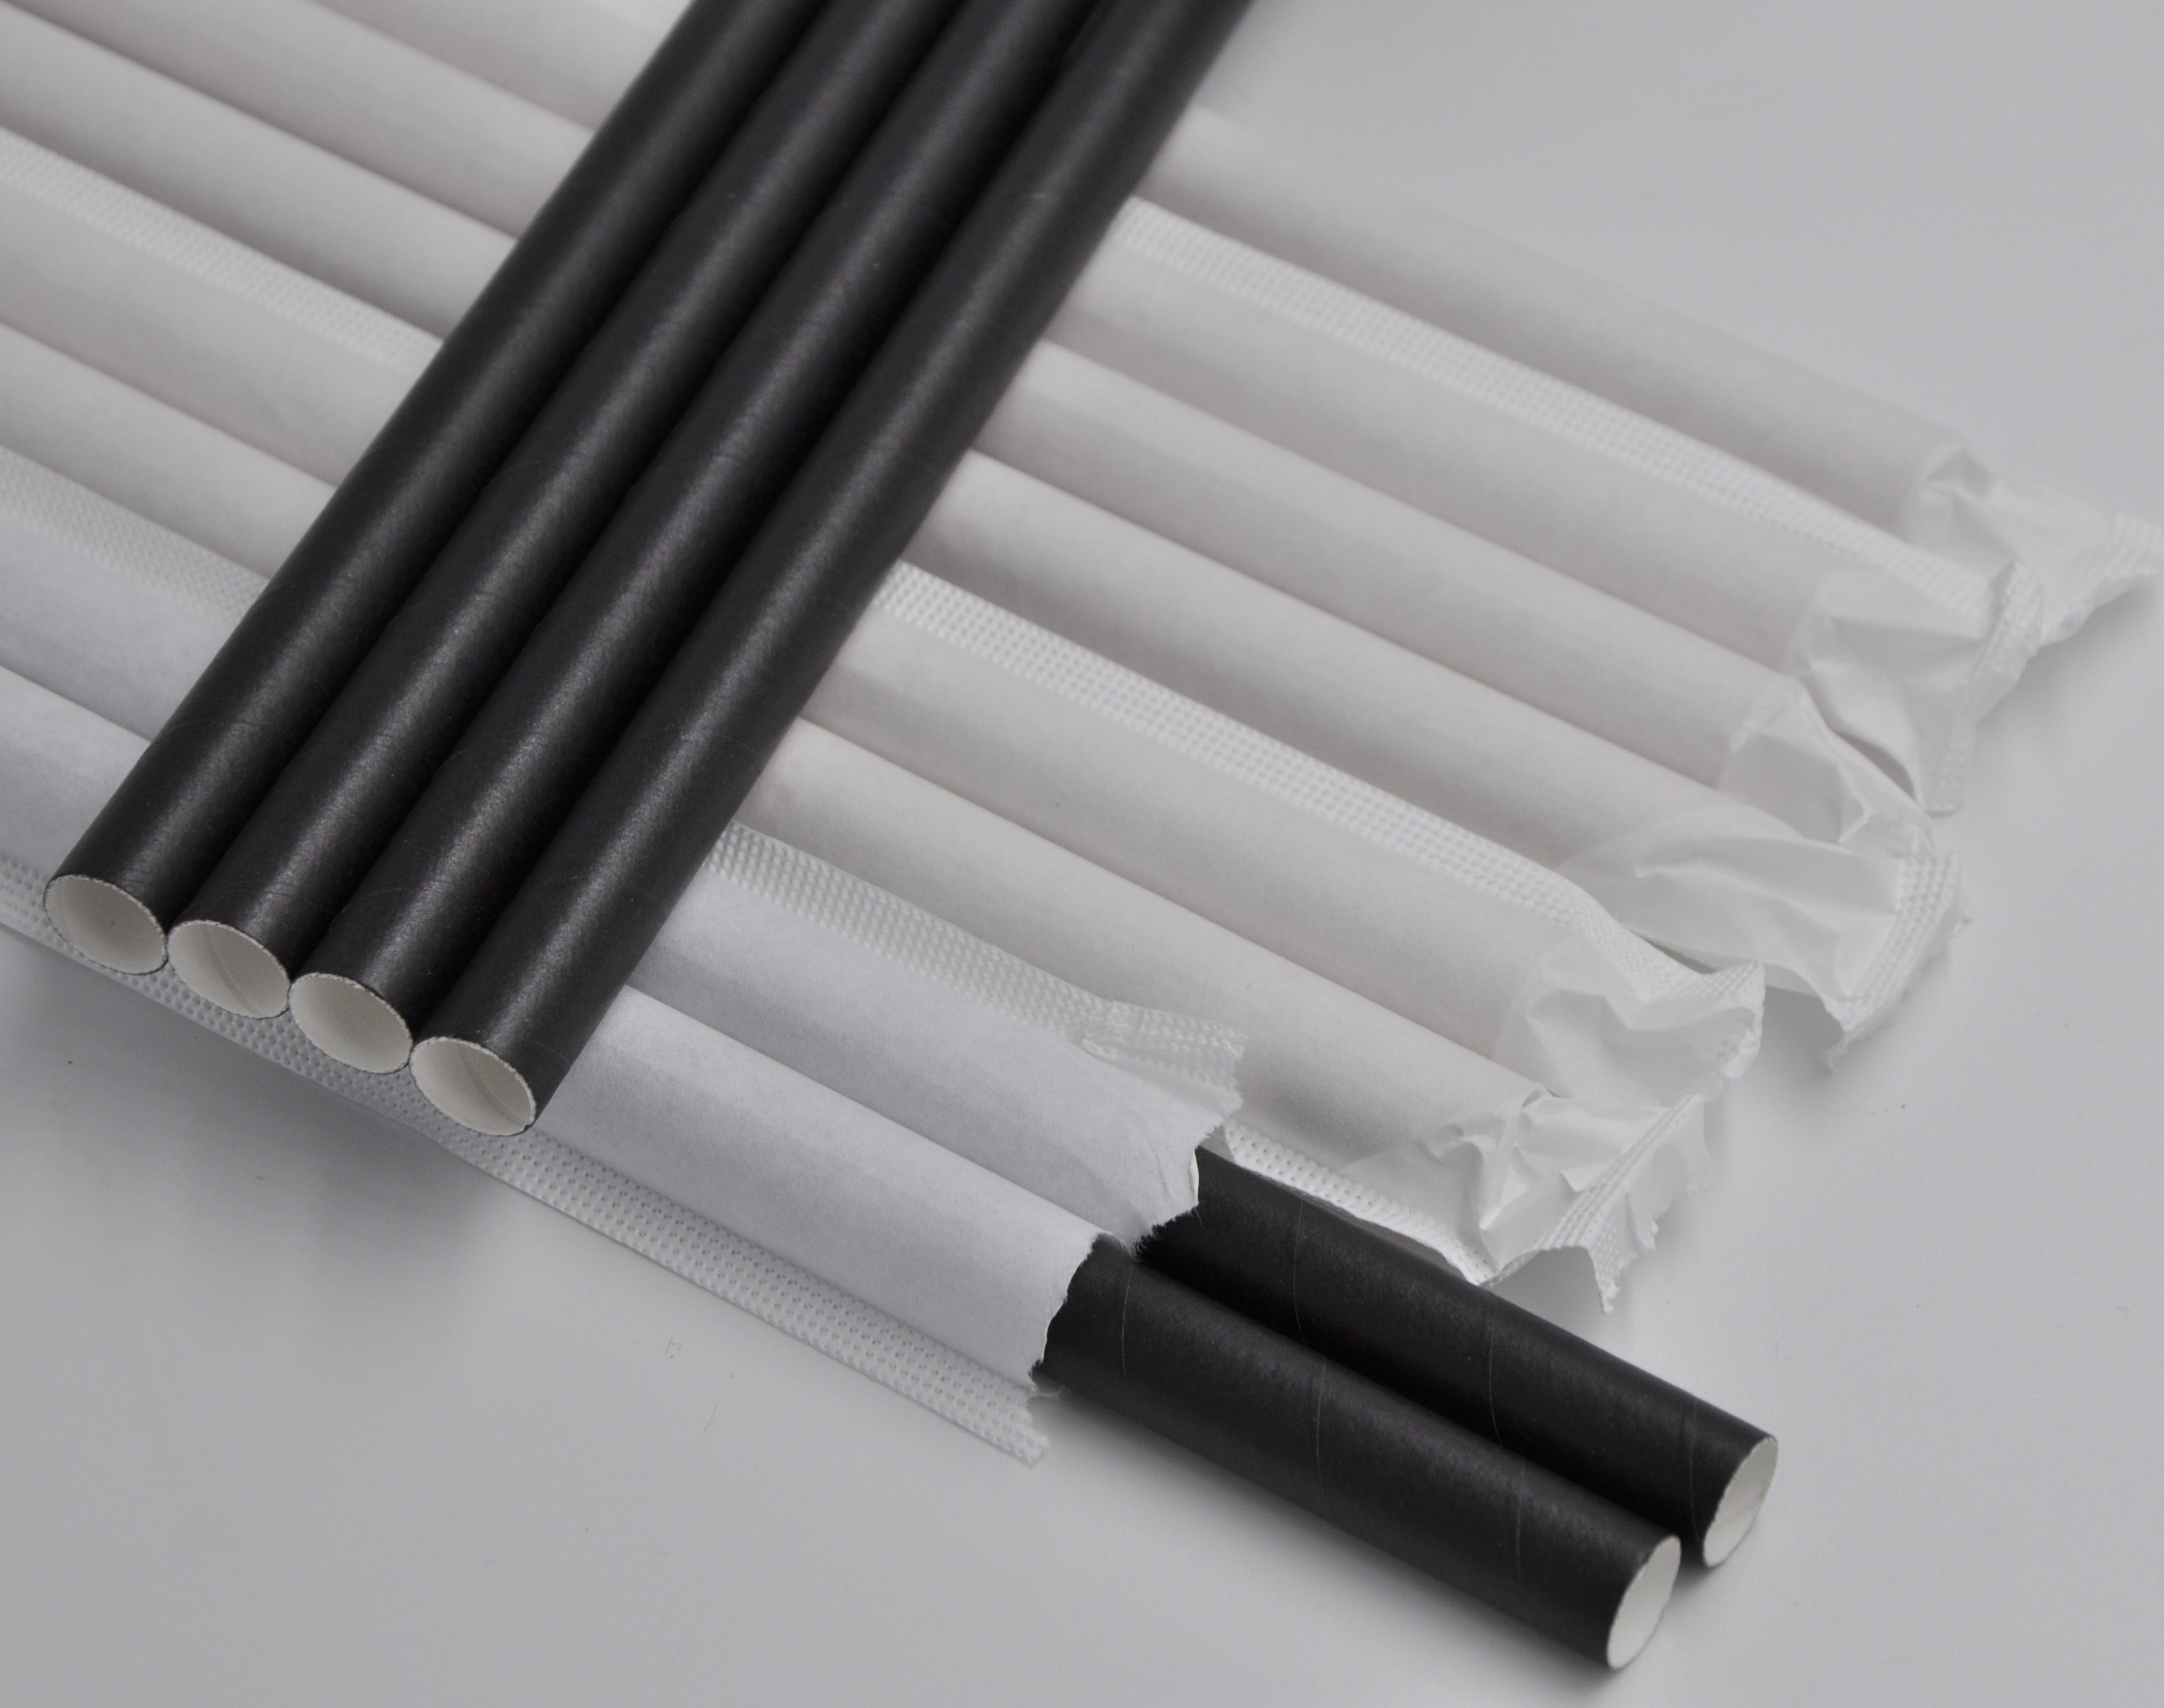 Biodegradable Paper Straws Are Better Than PLA Straws